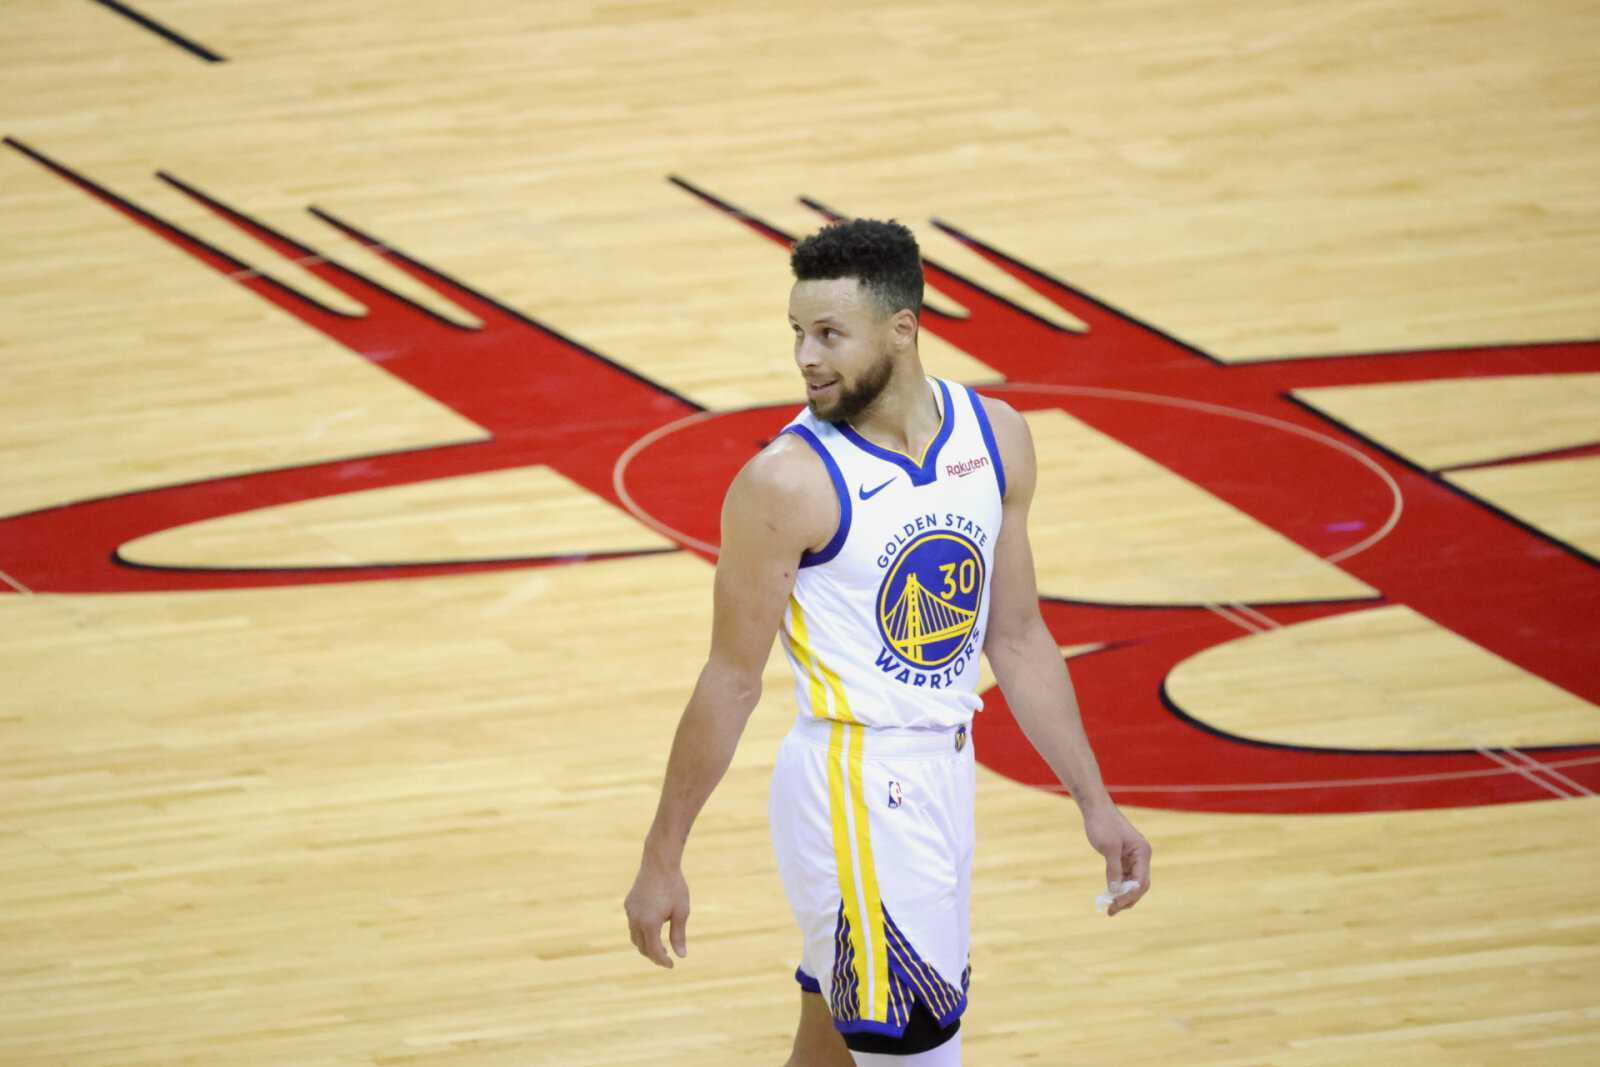 Kommer Stephen Curry att spela i kväll?  Golden State Warriors vs Houston Rockets - förutsägelser, skadauppdateringar och uppställningar